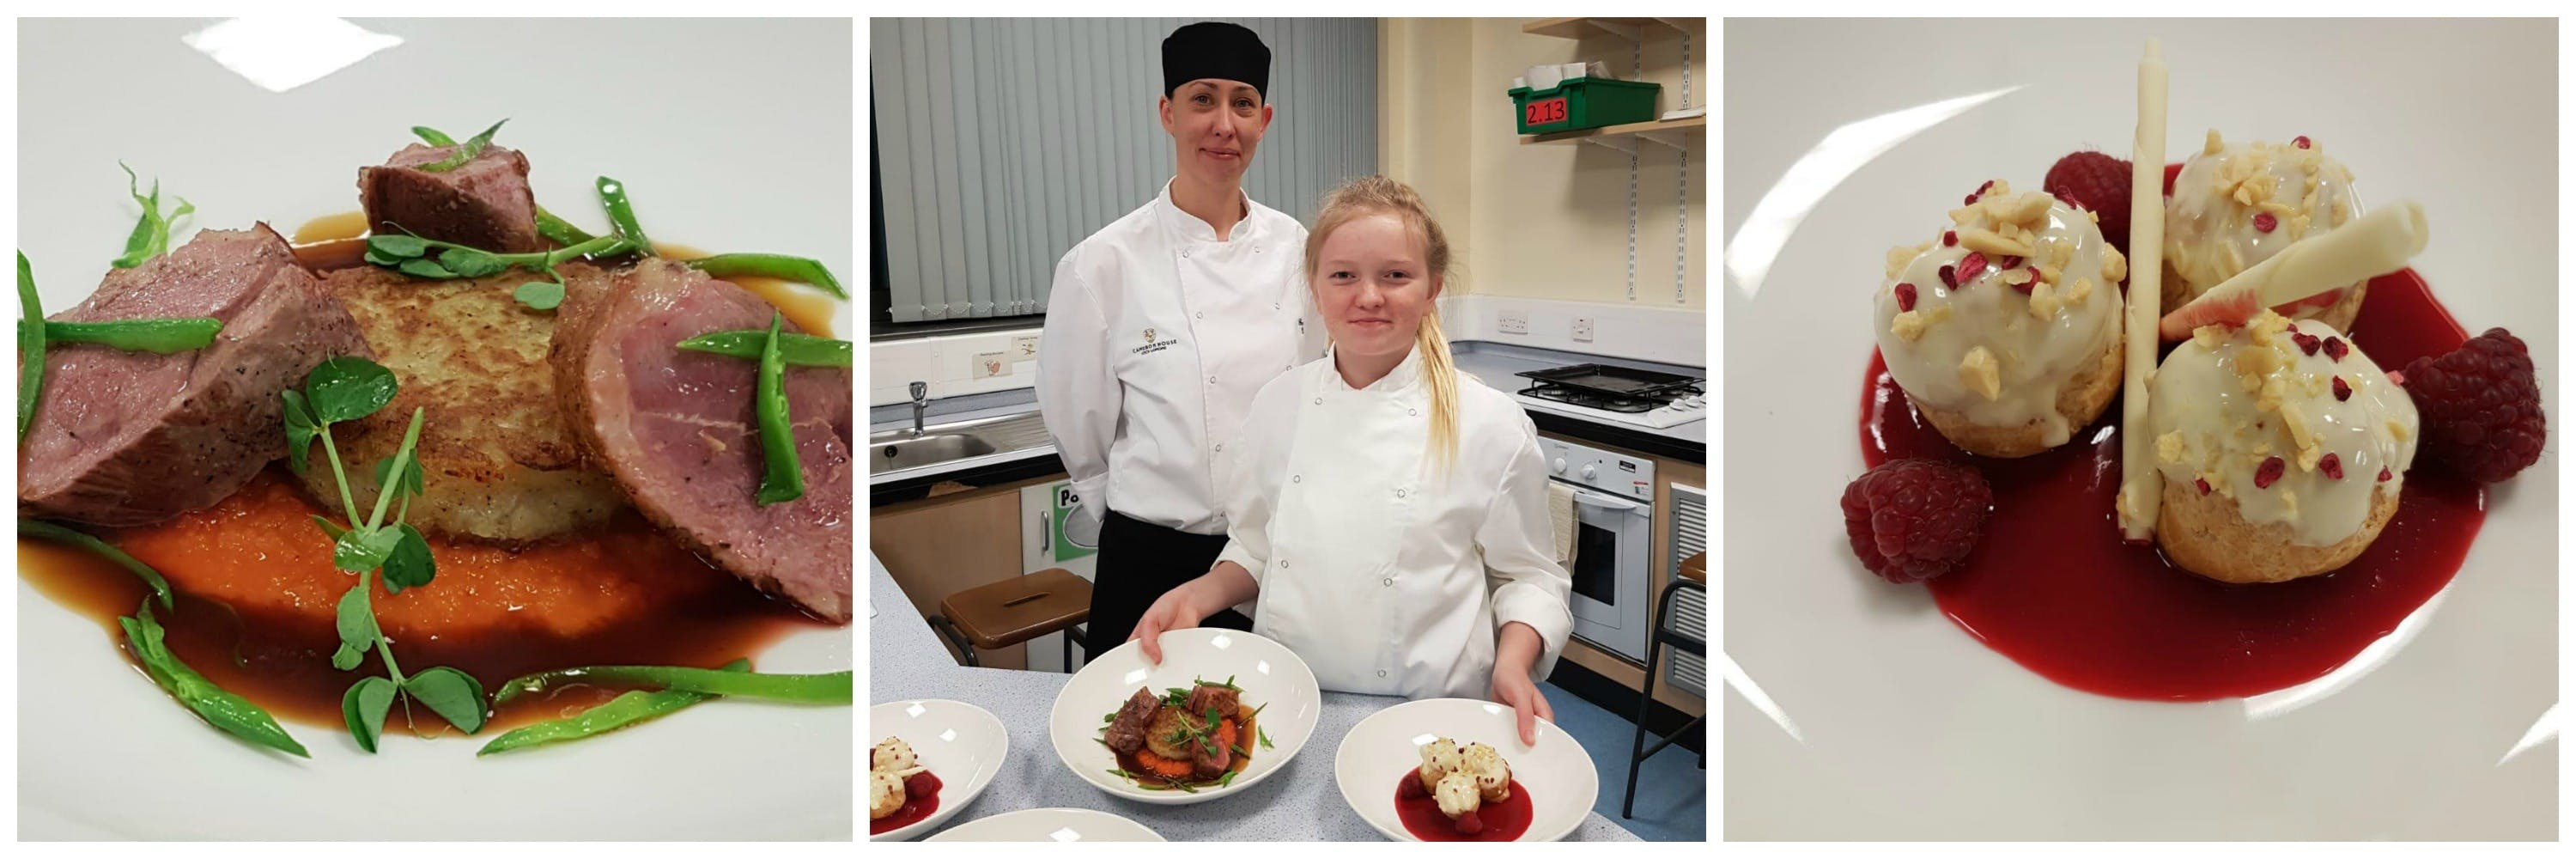 Clubhouse chef mentoring young budding chef